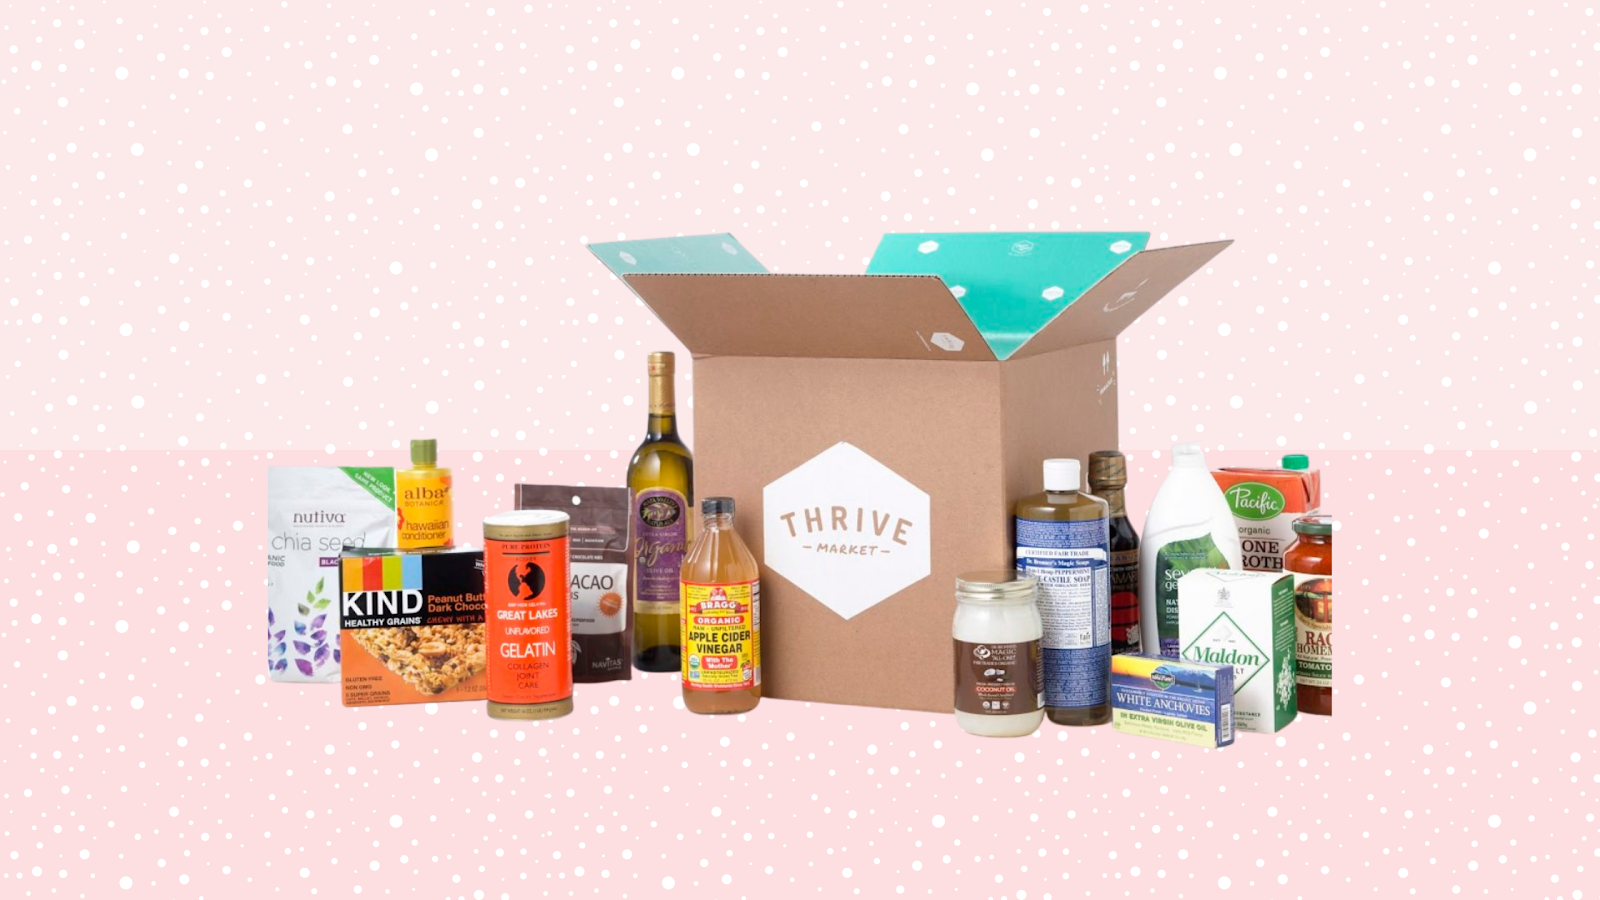 Best subscriptions for gifts from Thrive Market